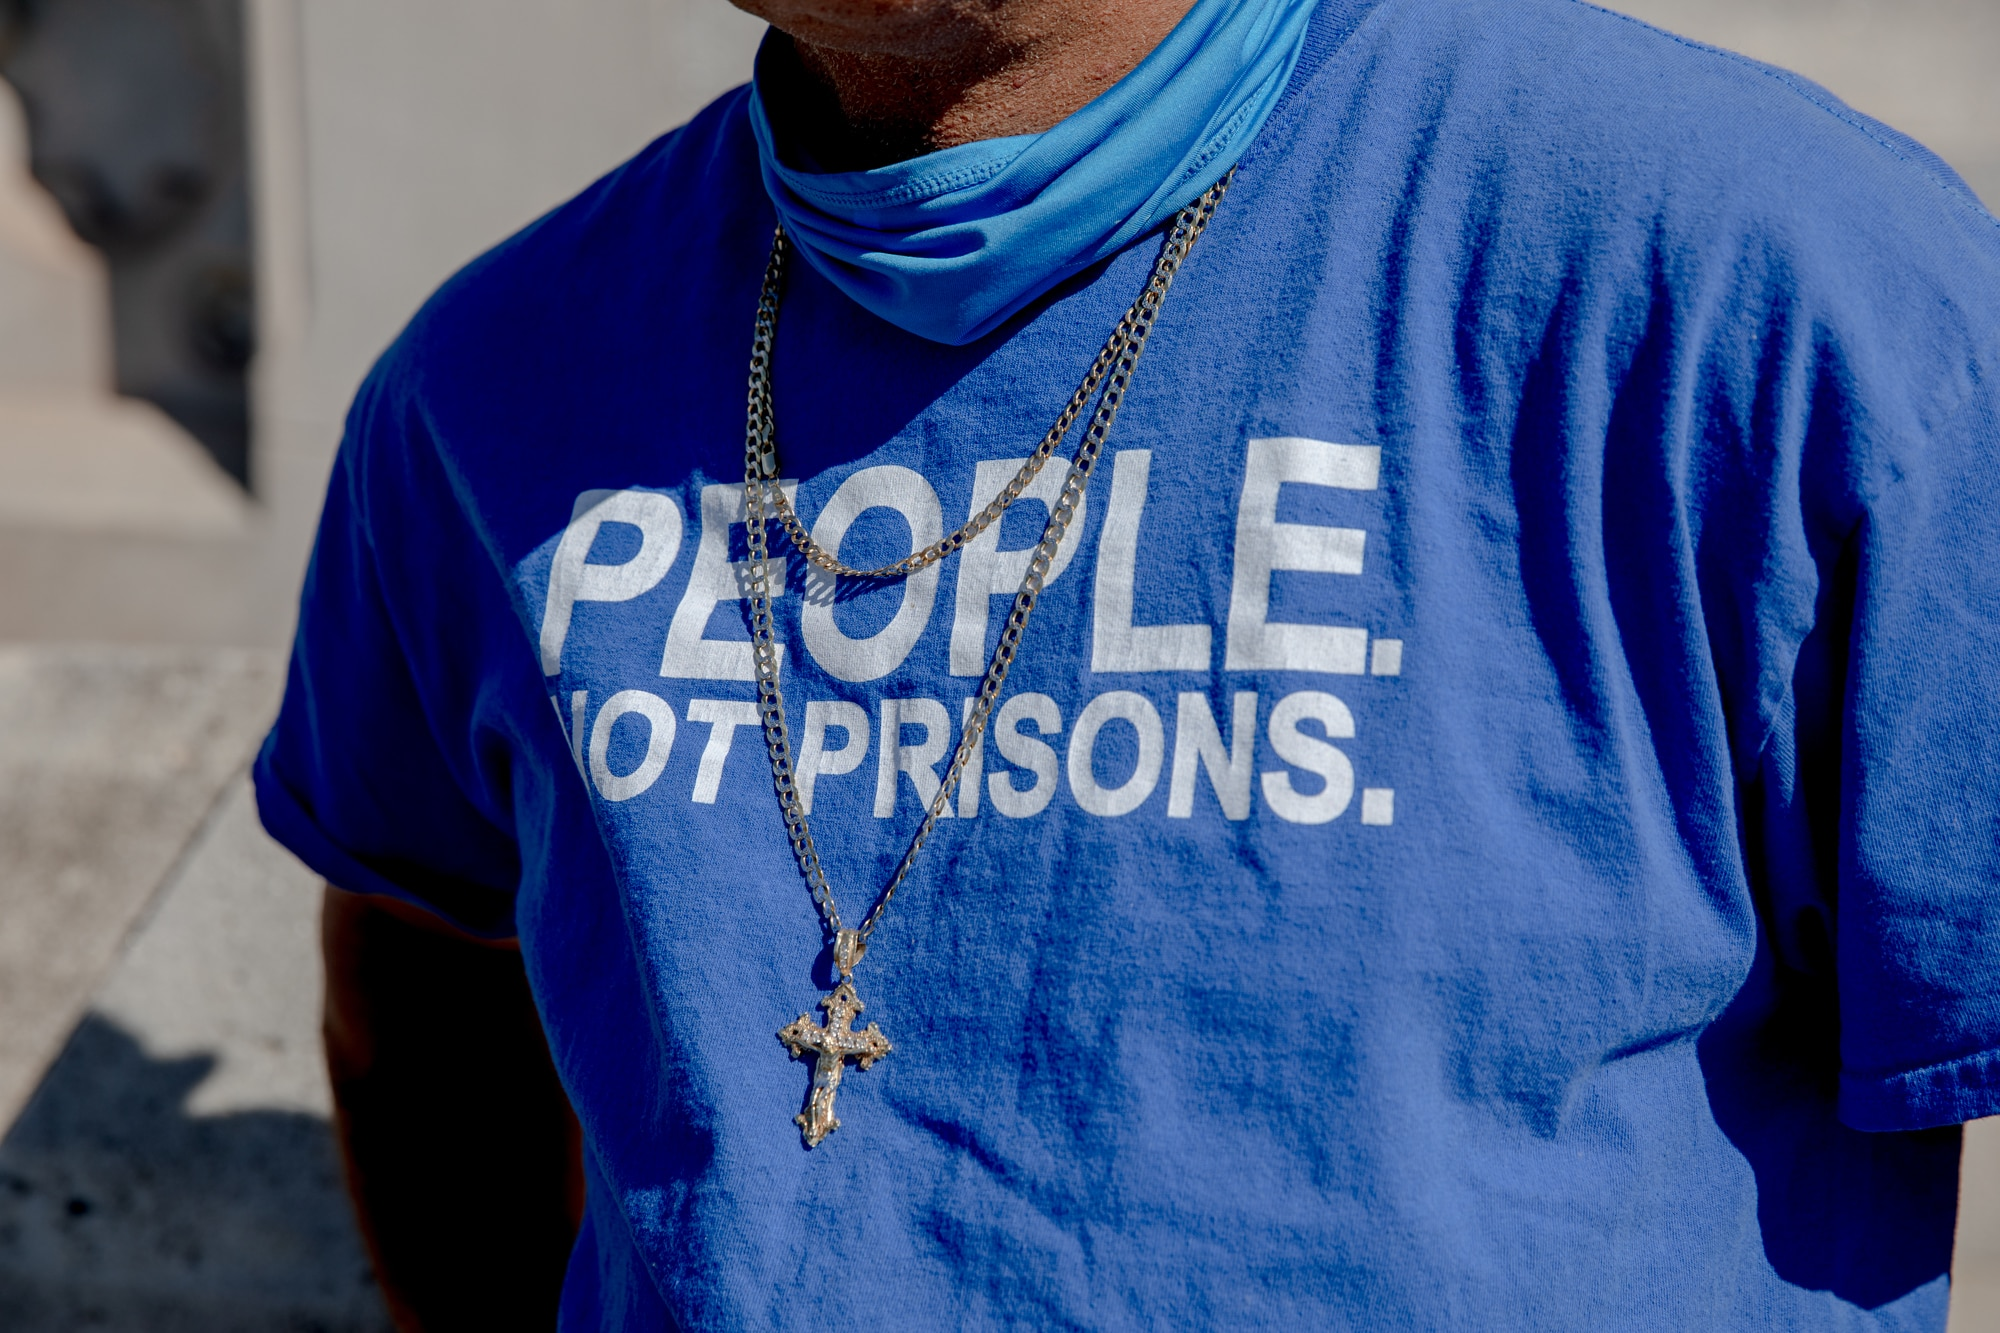 CT's prison population shrunk during the pandemic. Will it last?